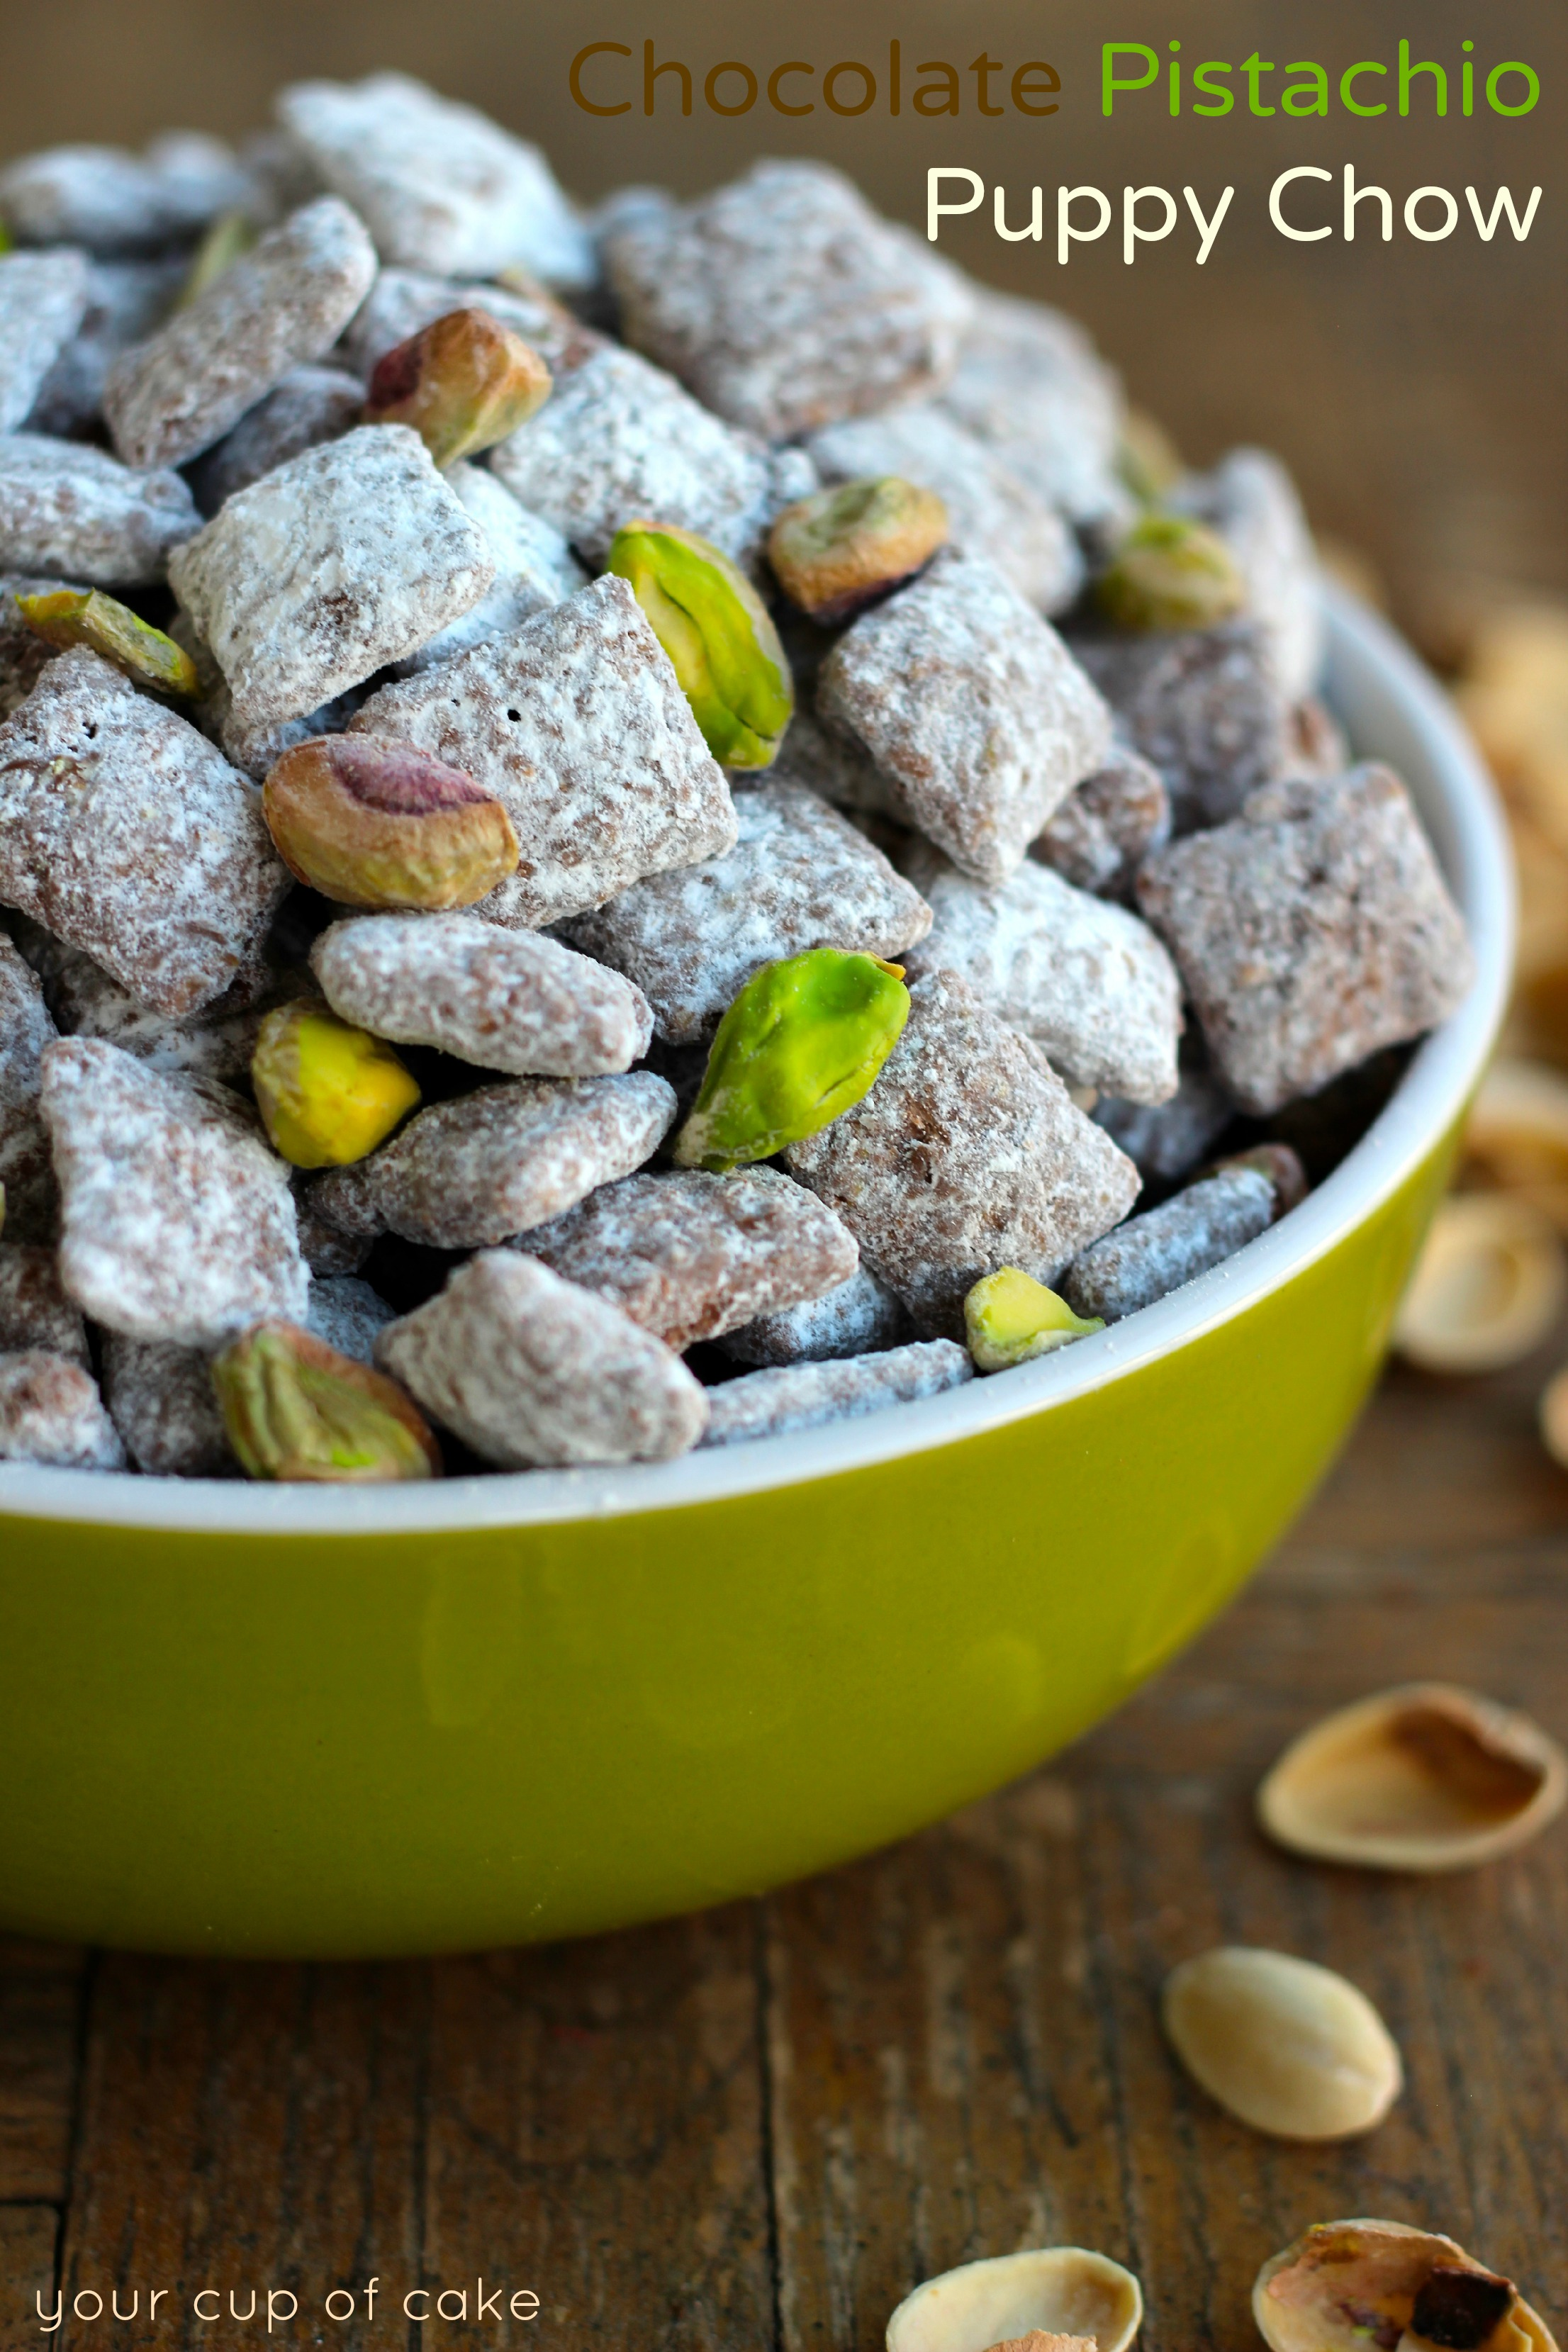 Chocolate pistachio puppy chow your cup of cake